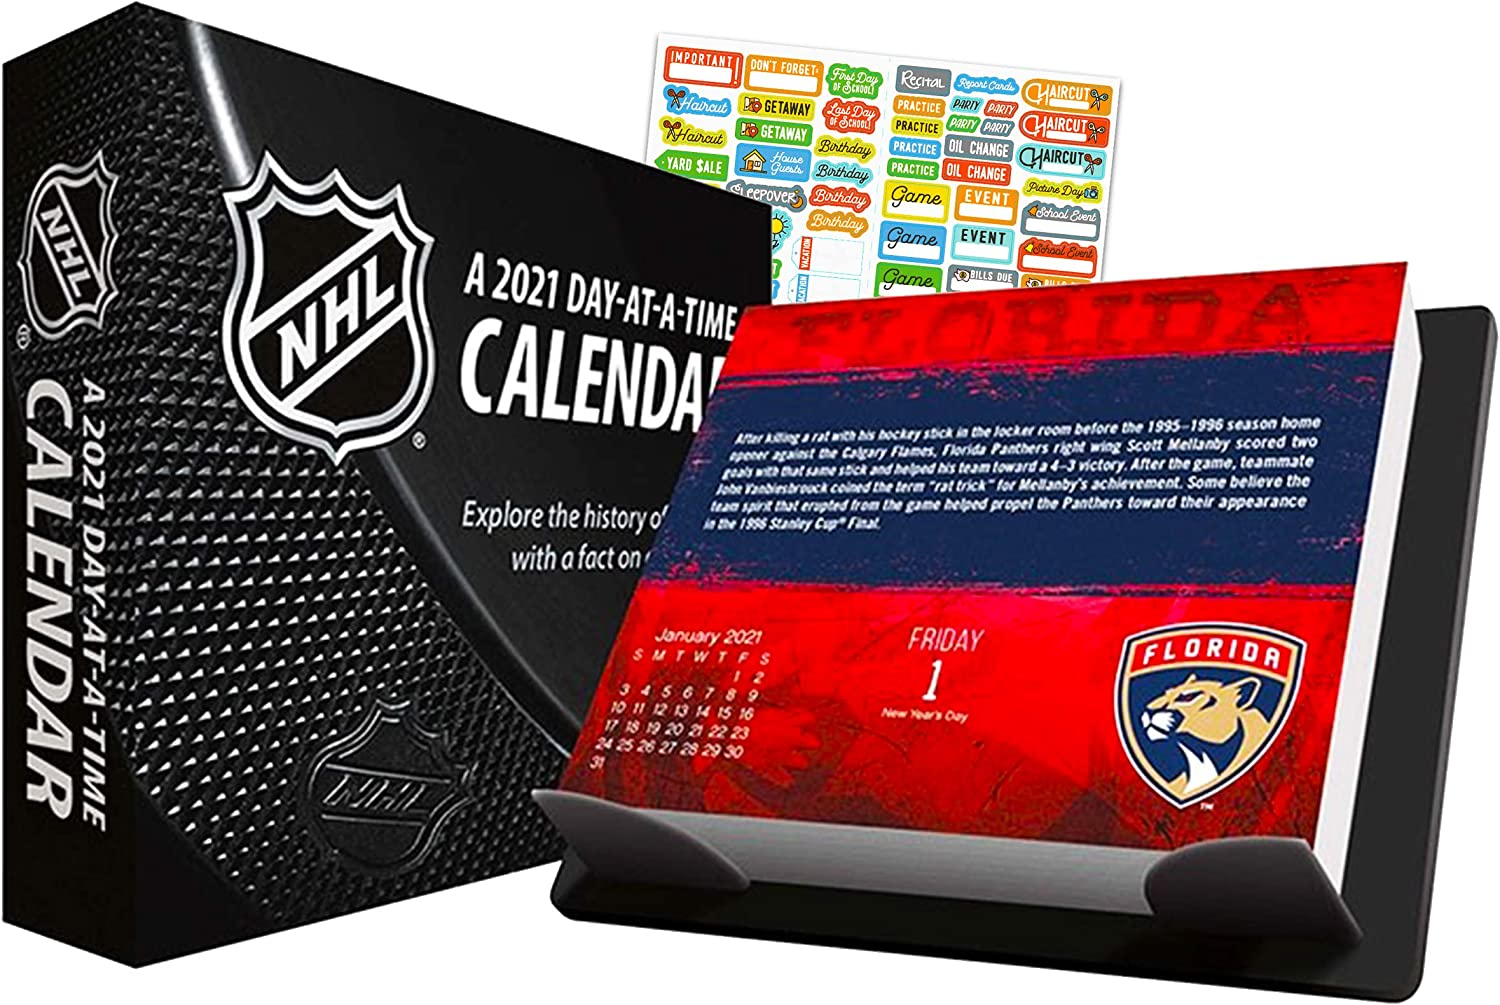 NHL 2021 Calendar, Box Edition Bundle - Deluxe 2021 Day-at-a-Time Box Calendar with Over 100 Calendar Stickers (NHL Gifts, Office Supplies)